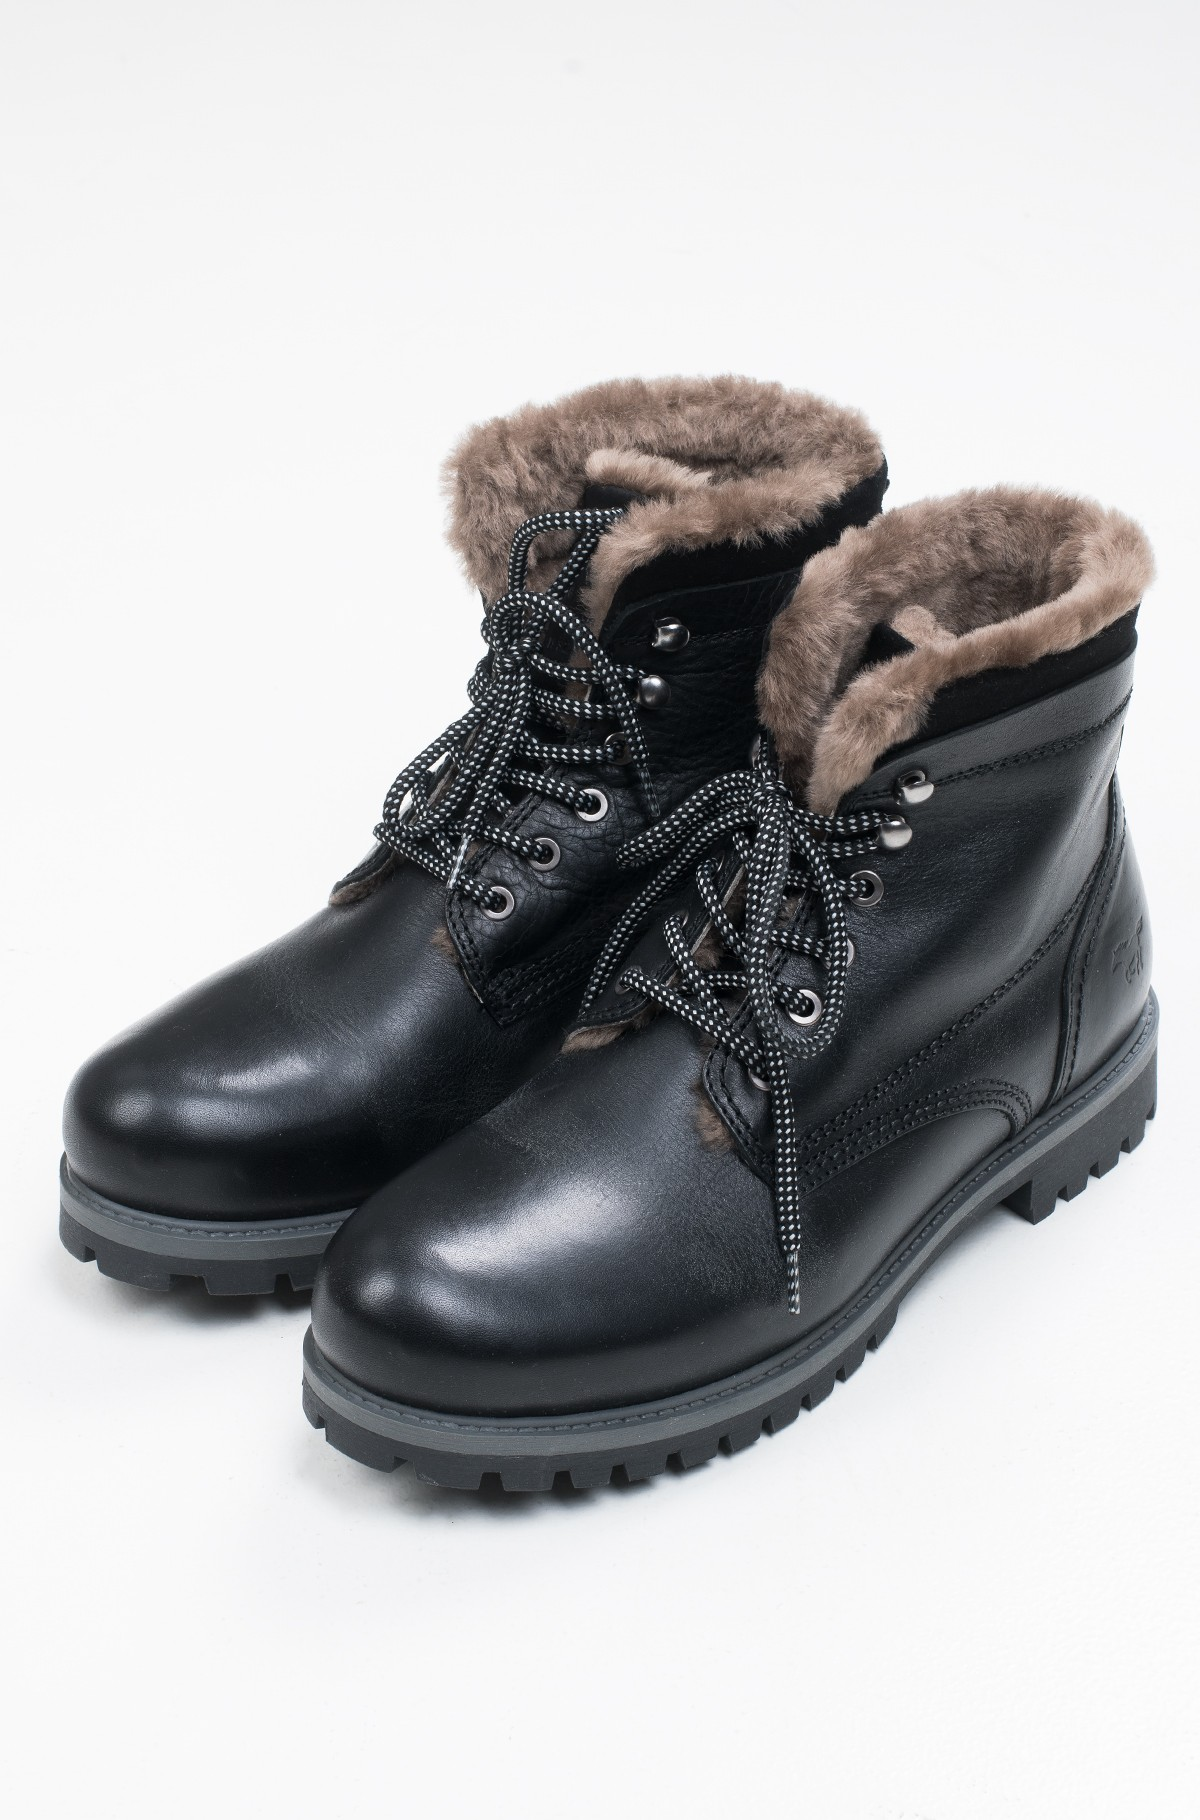 Boots 4875610-full-1